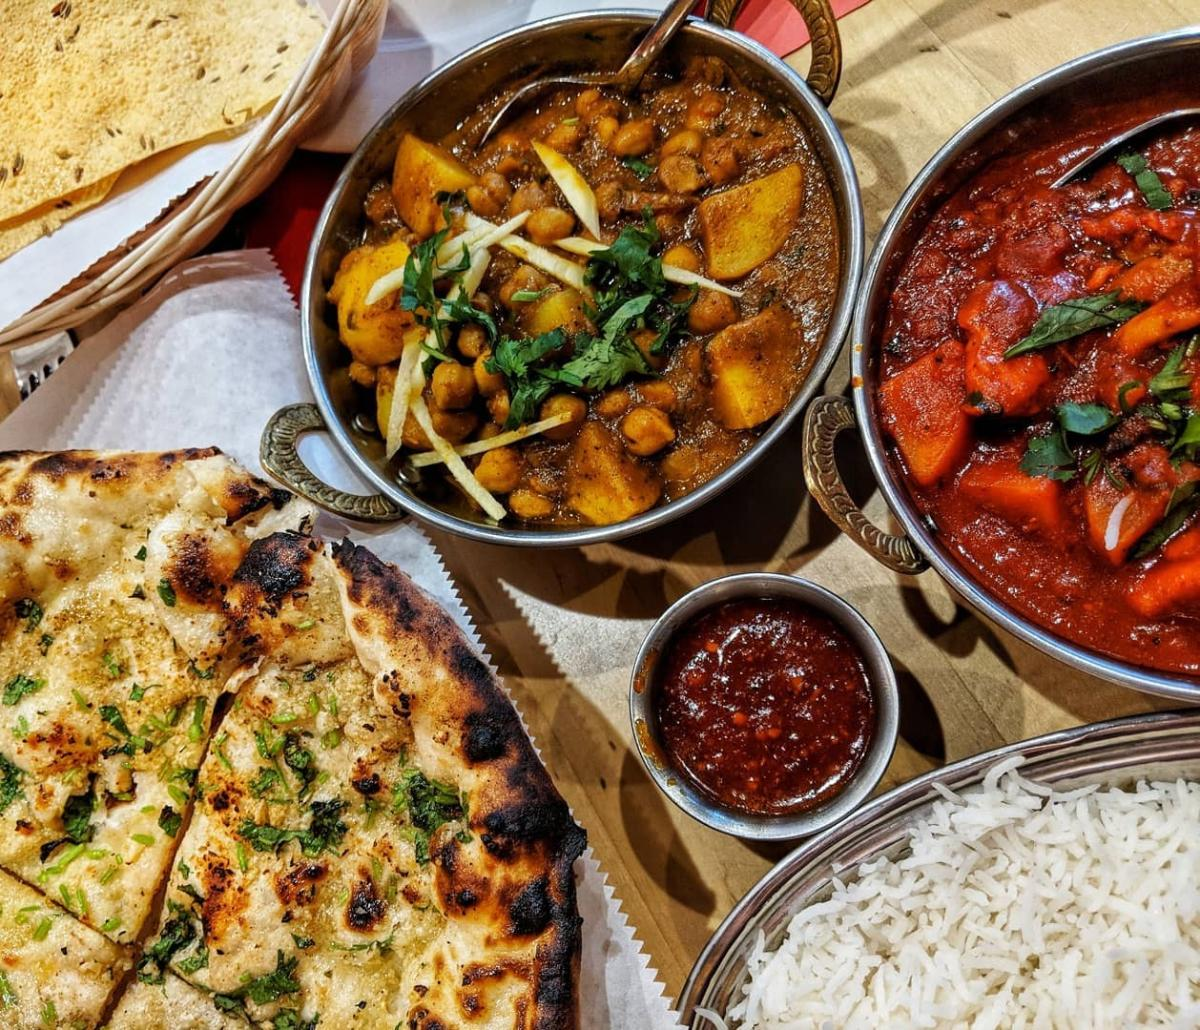 Cuisine India Indian Cuisine In Fort Worth